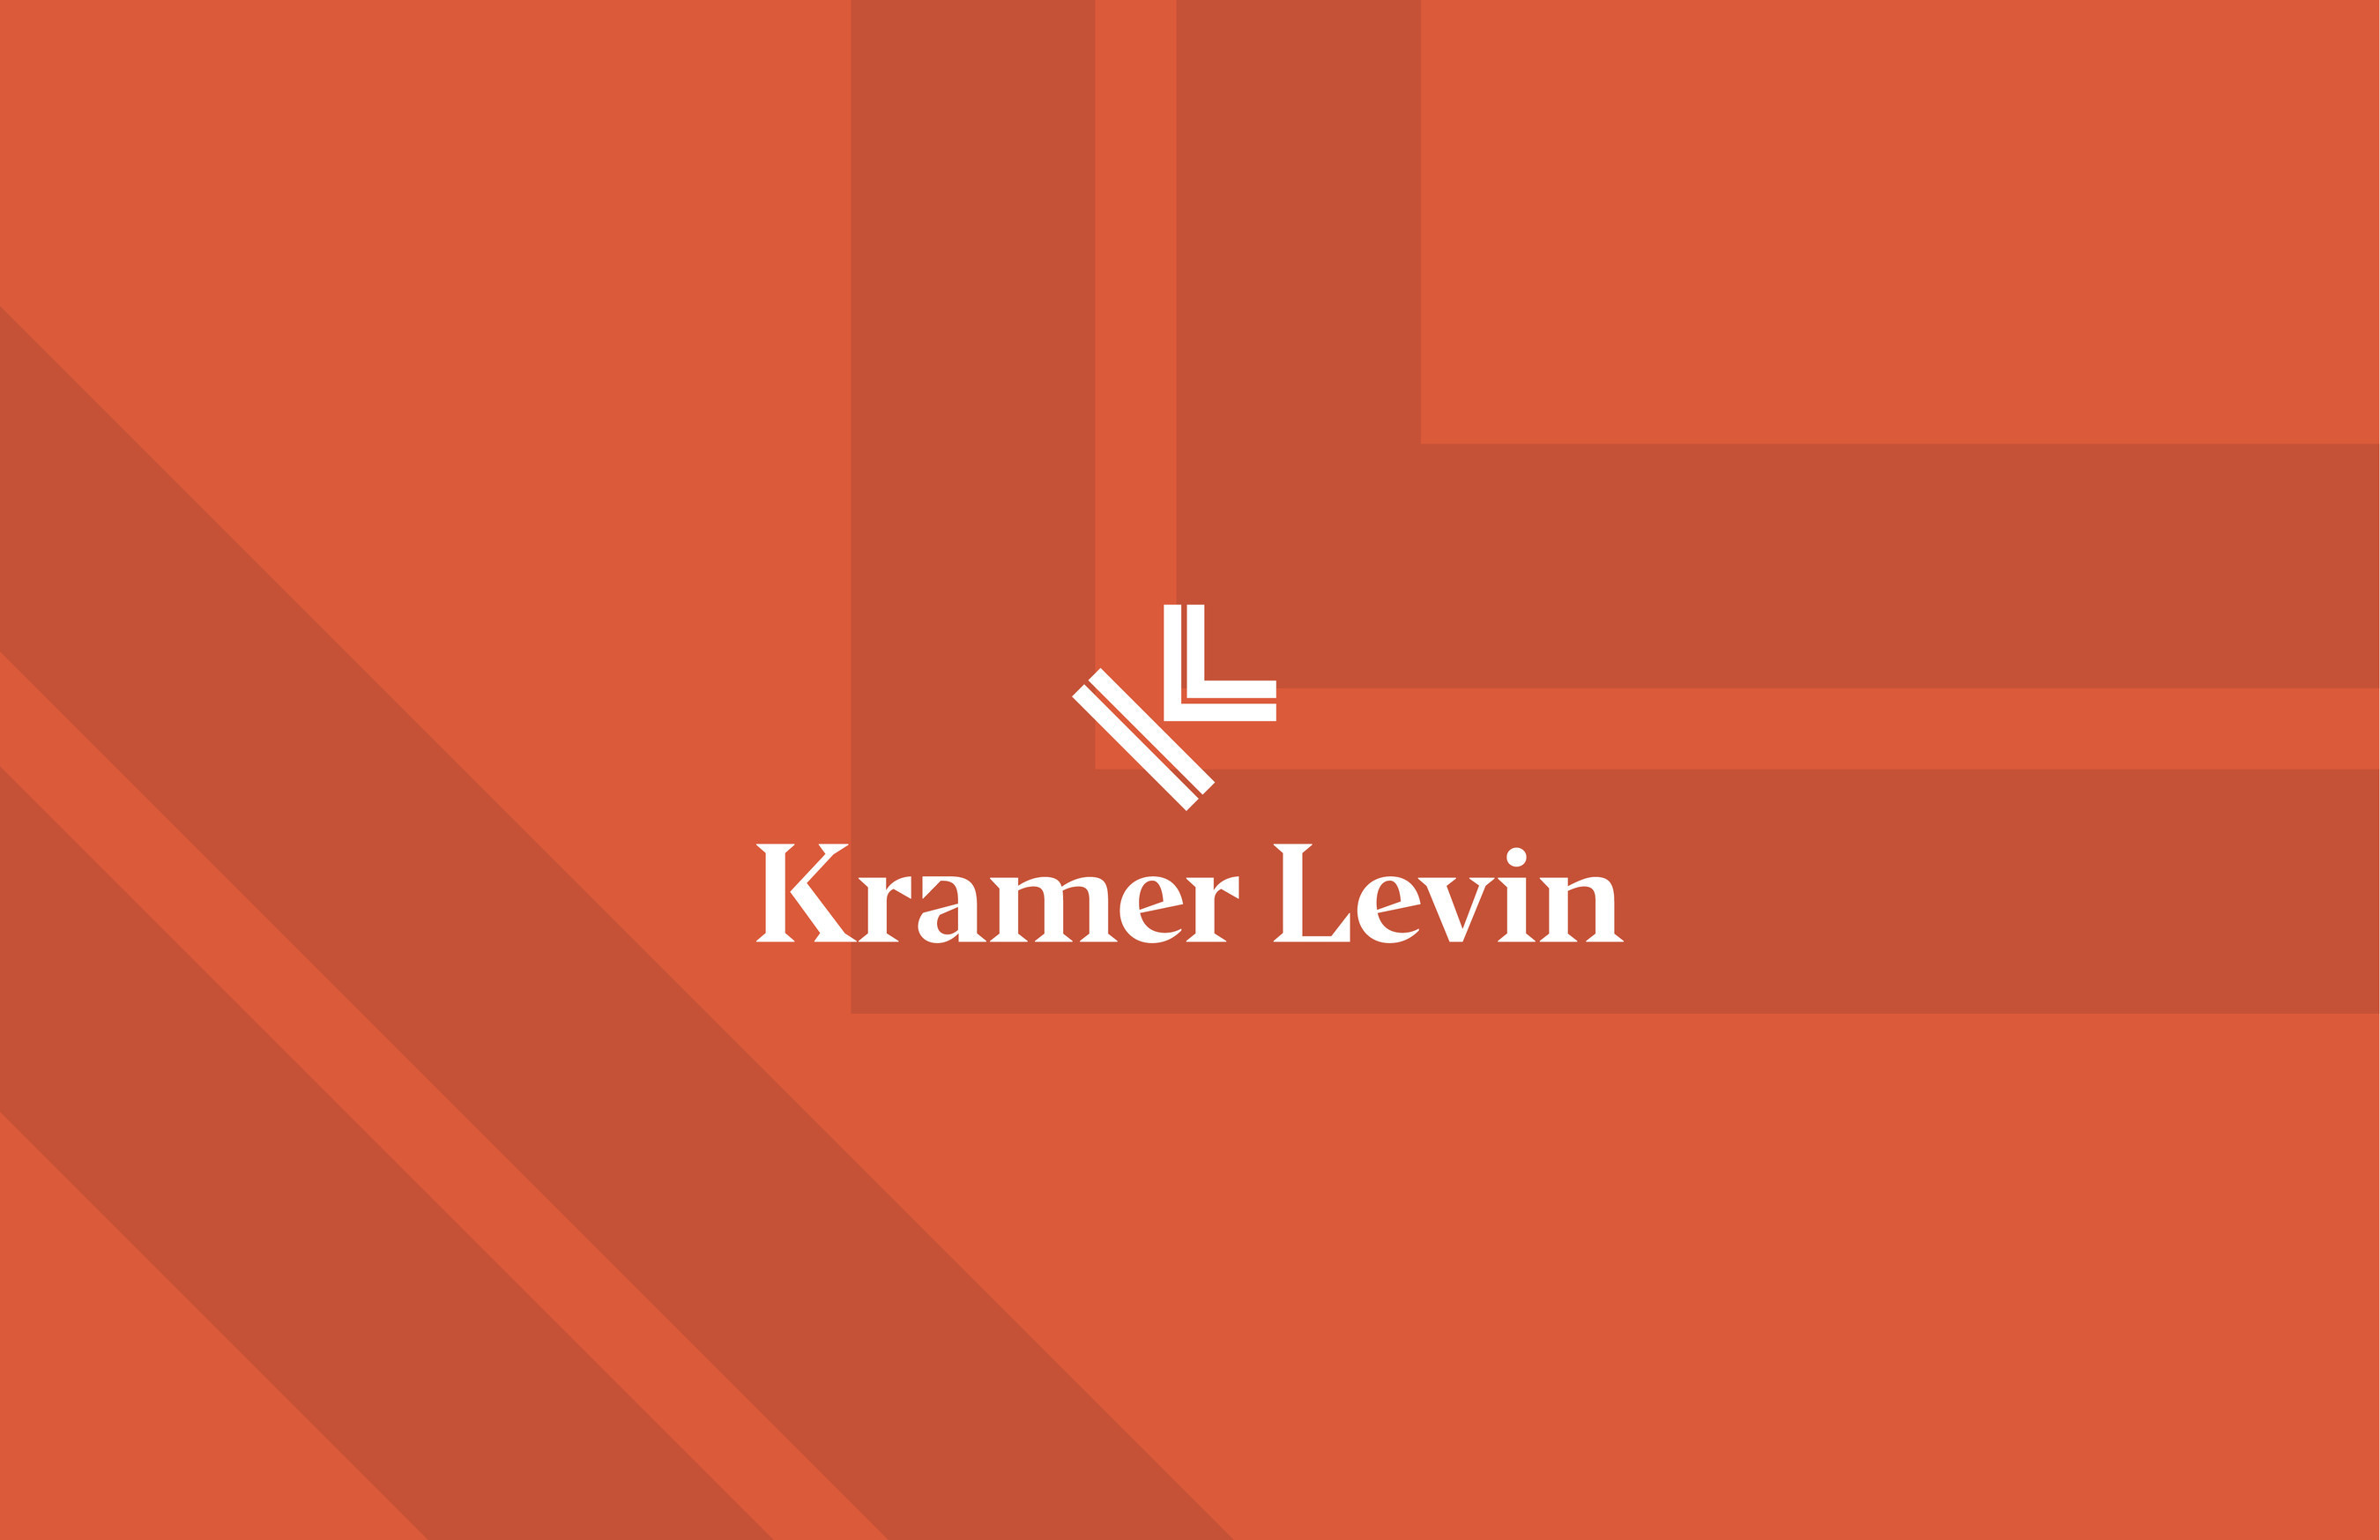 Kramer Levin logo and pattern.